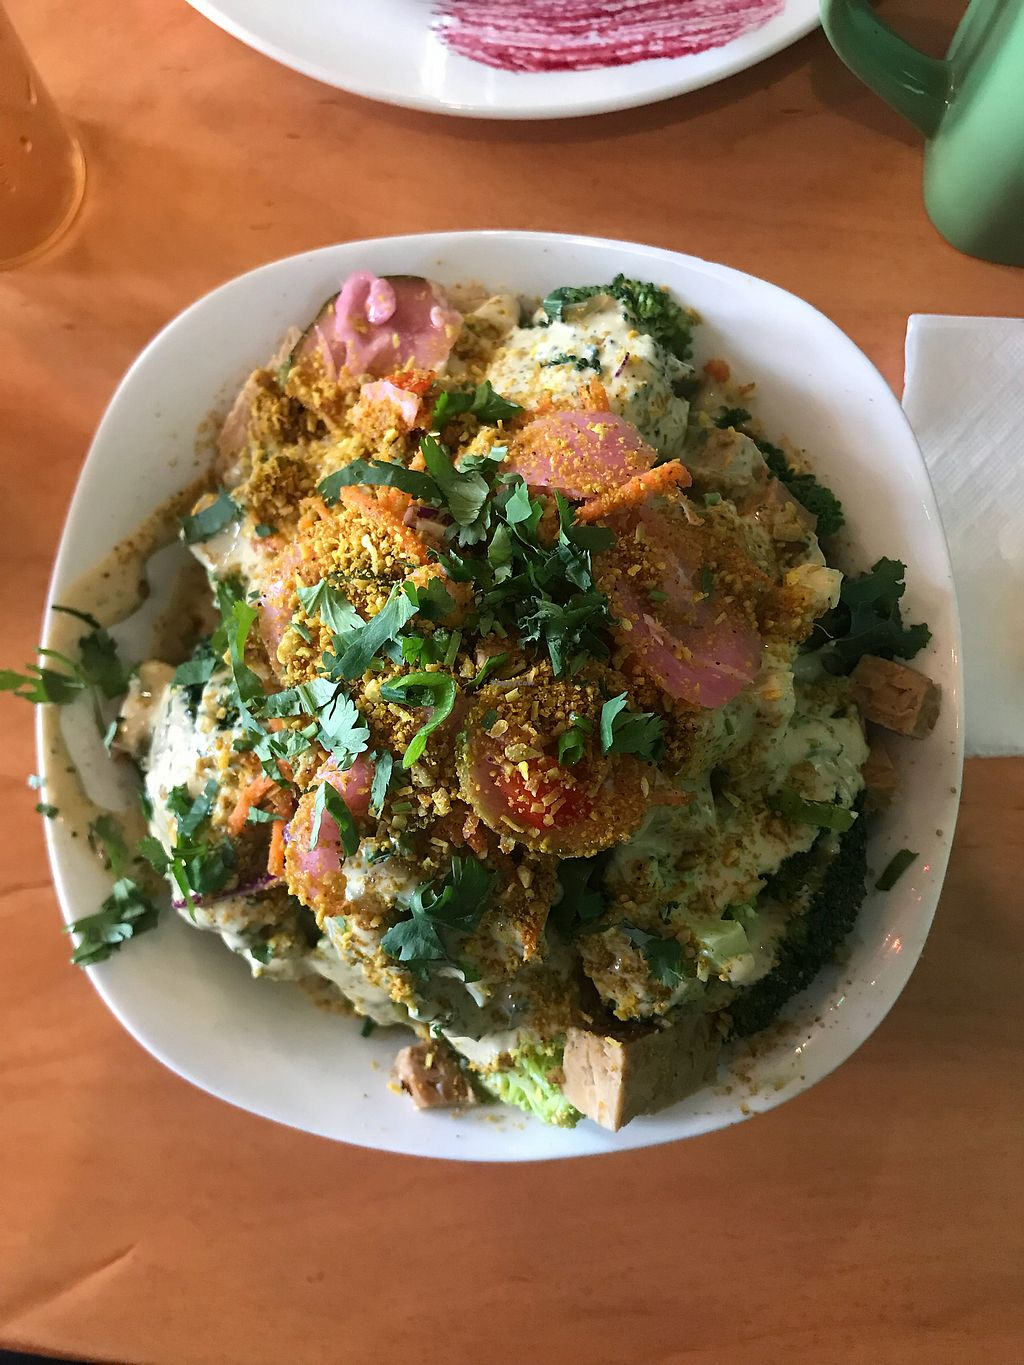 """Photo of Pingala Cafe  by <a href=""""/members/profile/theveganregan"""">theveganregan</a> <br/>Buddha Bowl <br/> November 11, 2017  - <a href='/contact/abuse/image/45669/324287'>Report</a>"""